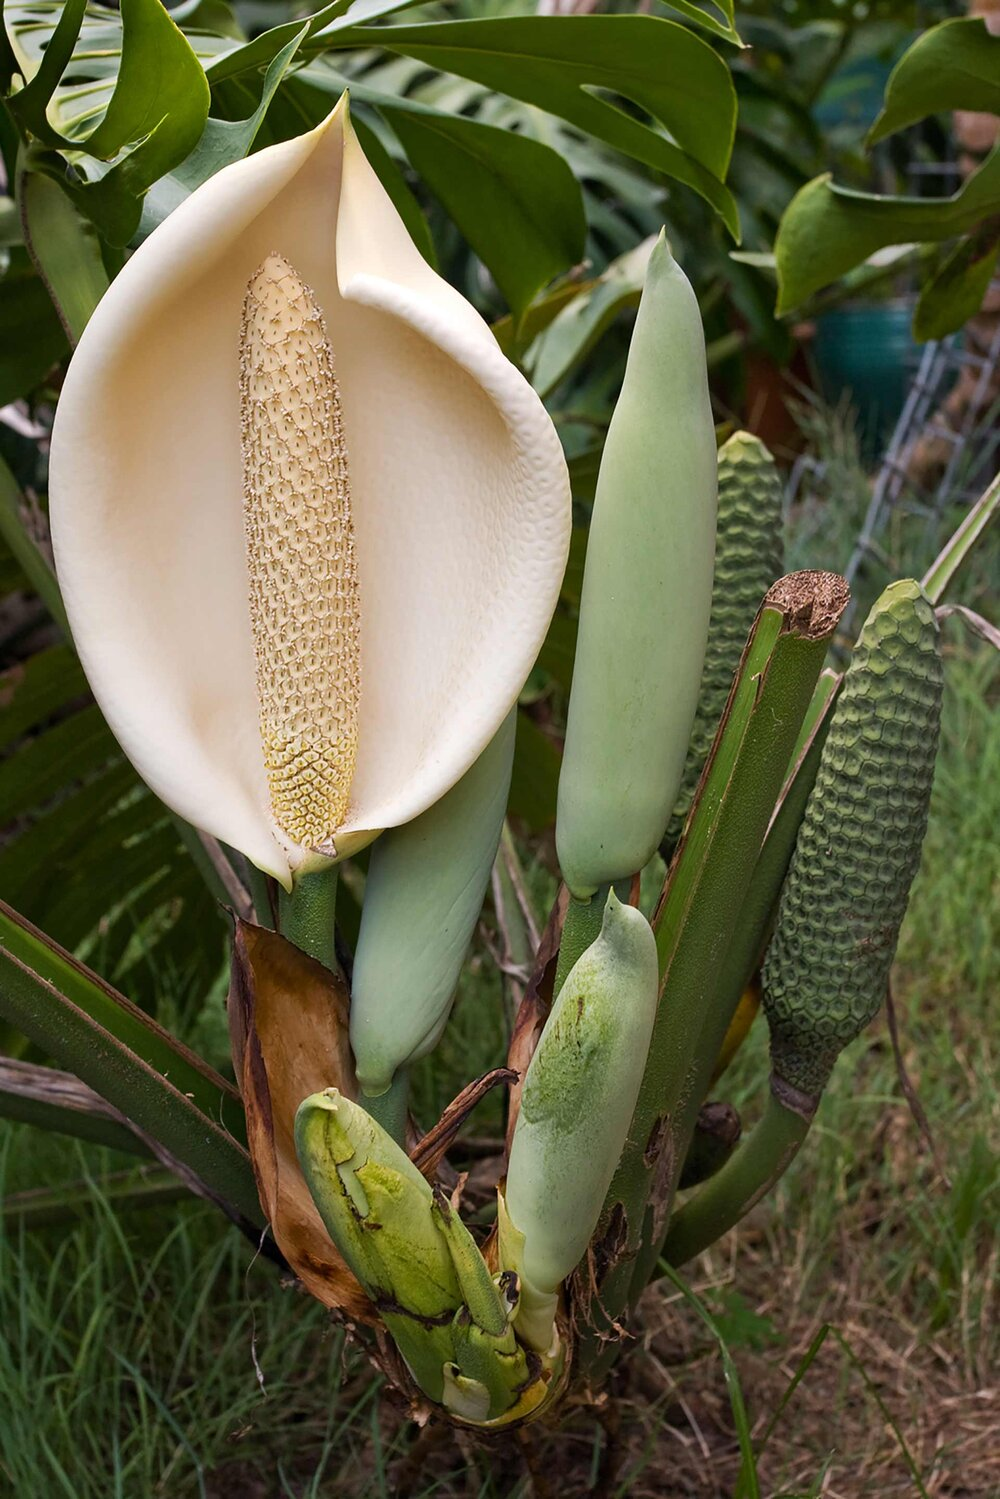 Monstera deliciosa  immature composite fruits and an inflorescence.    Image source